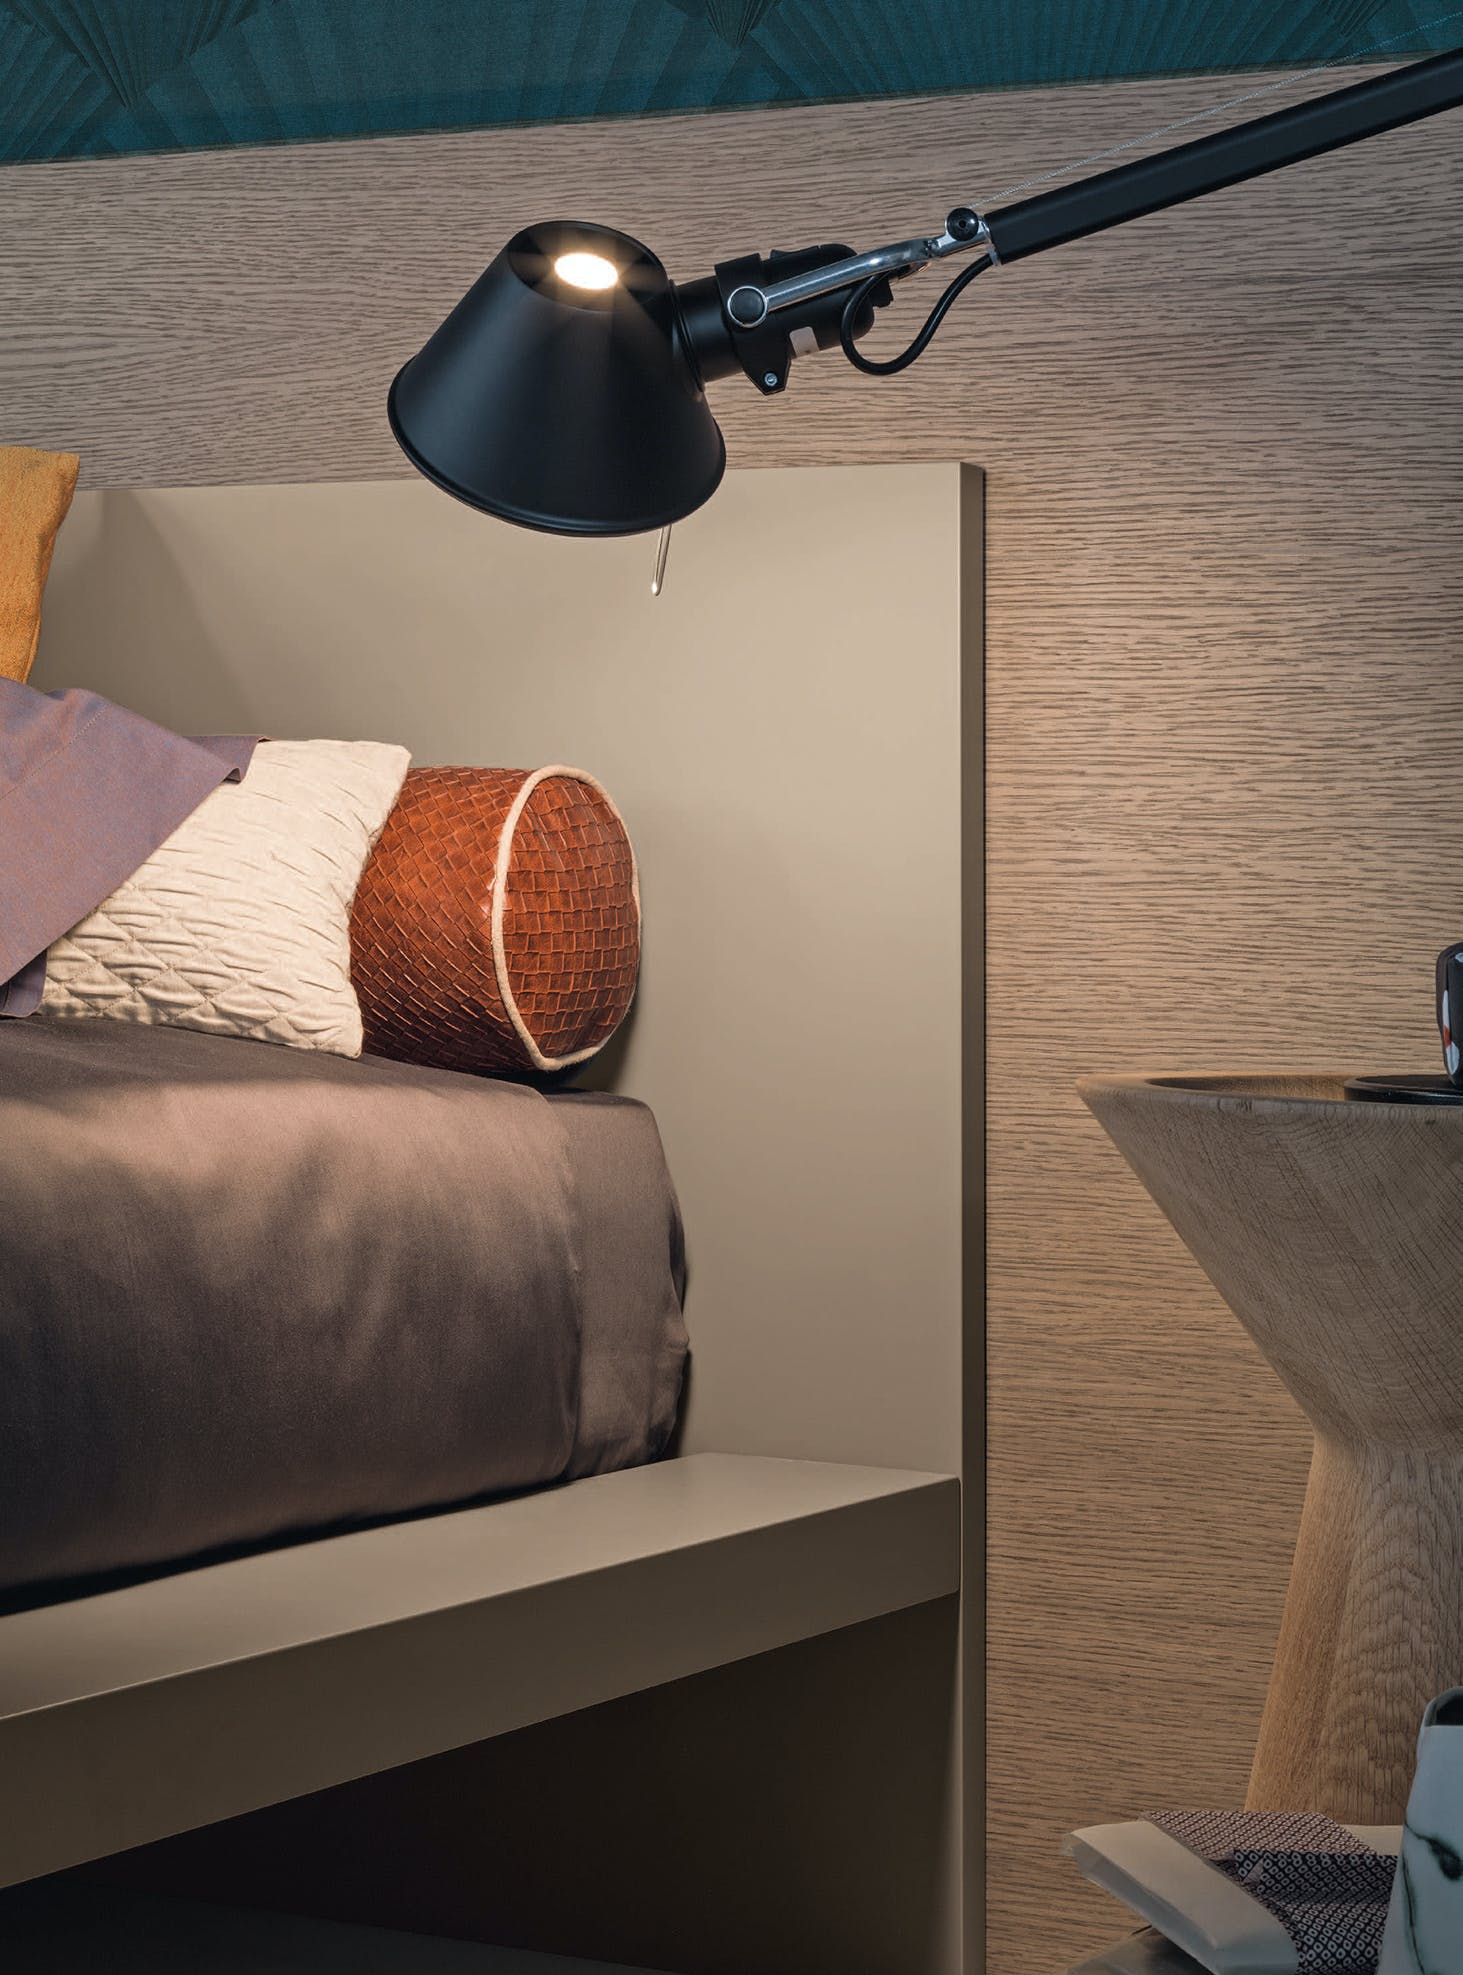 Giellesse Hug Bed Light Haute Living